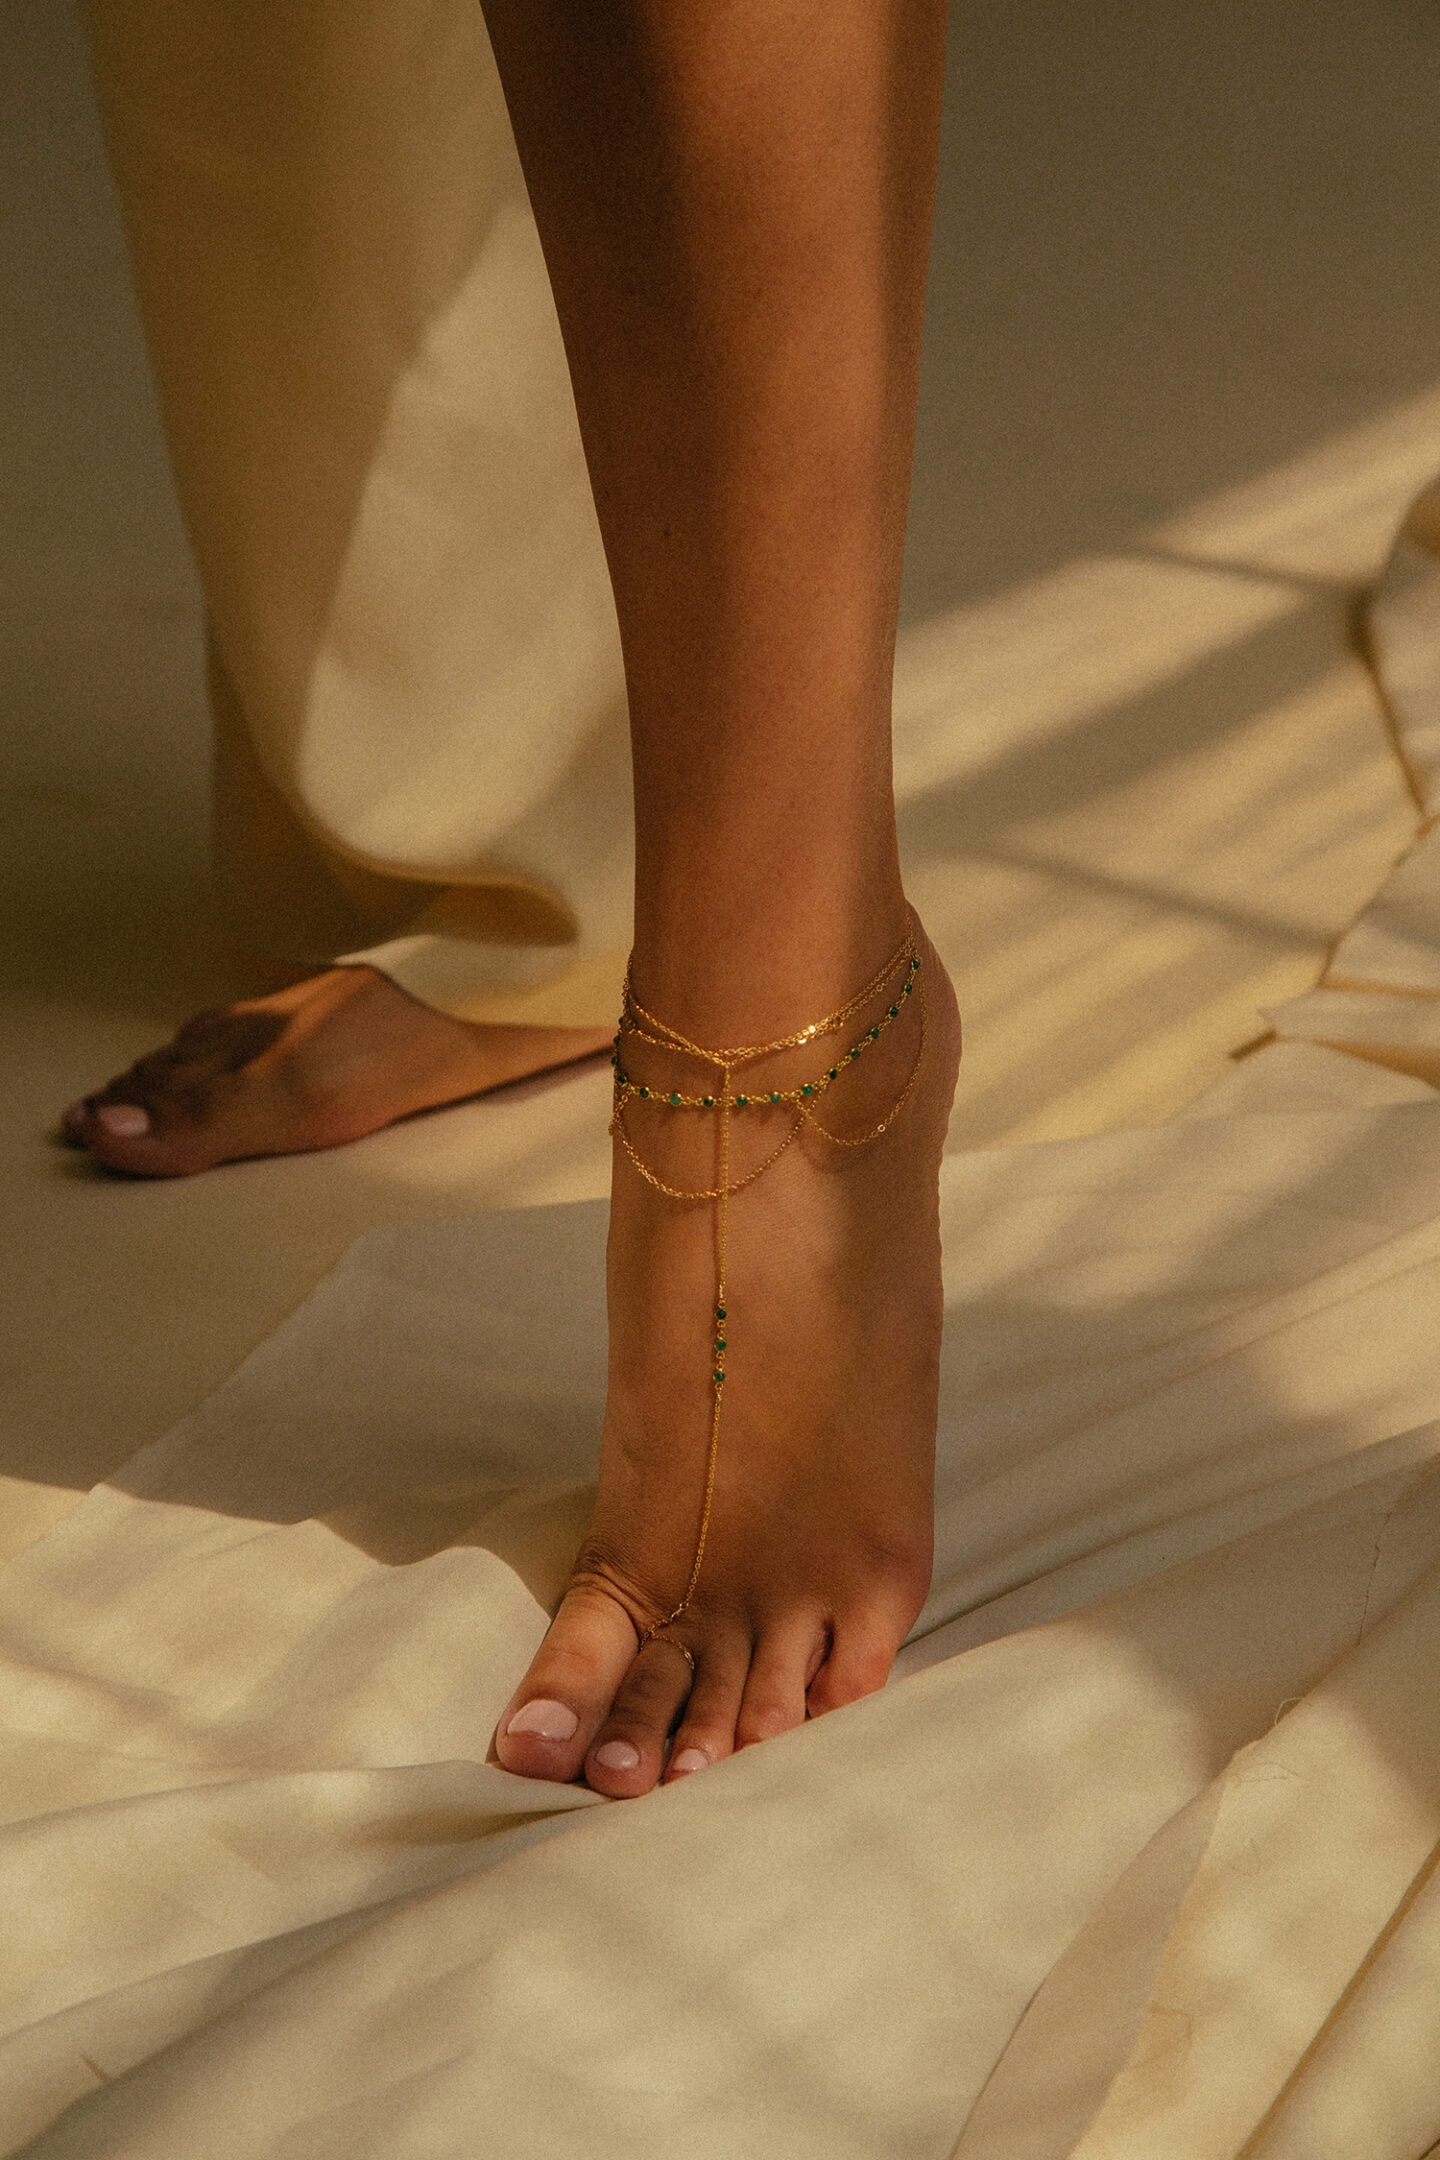 ANKLETS: THEIR STORY